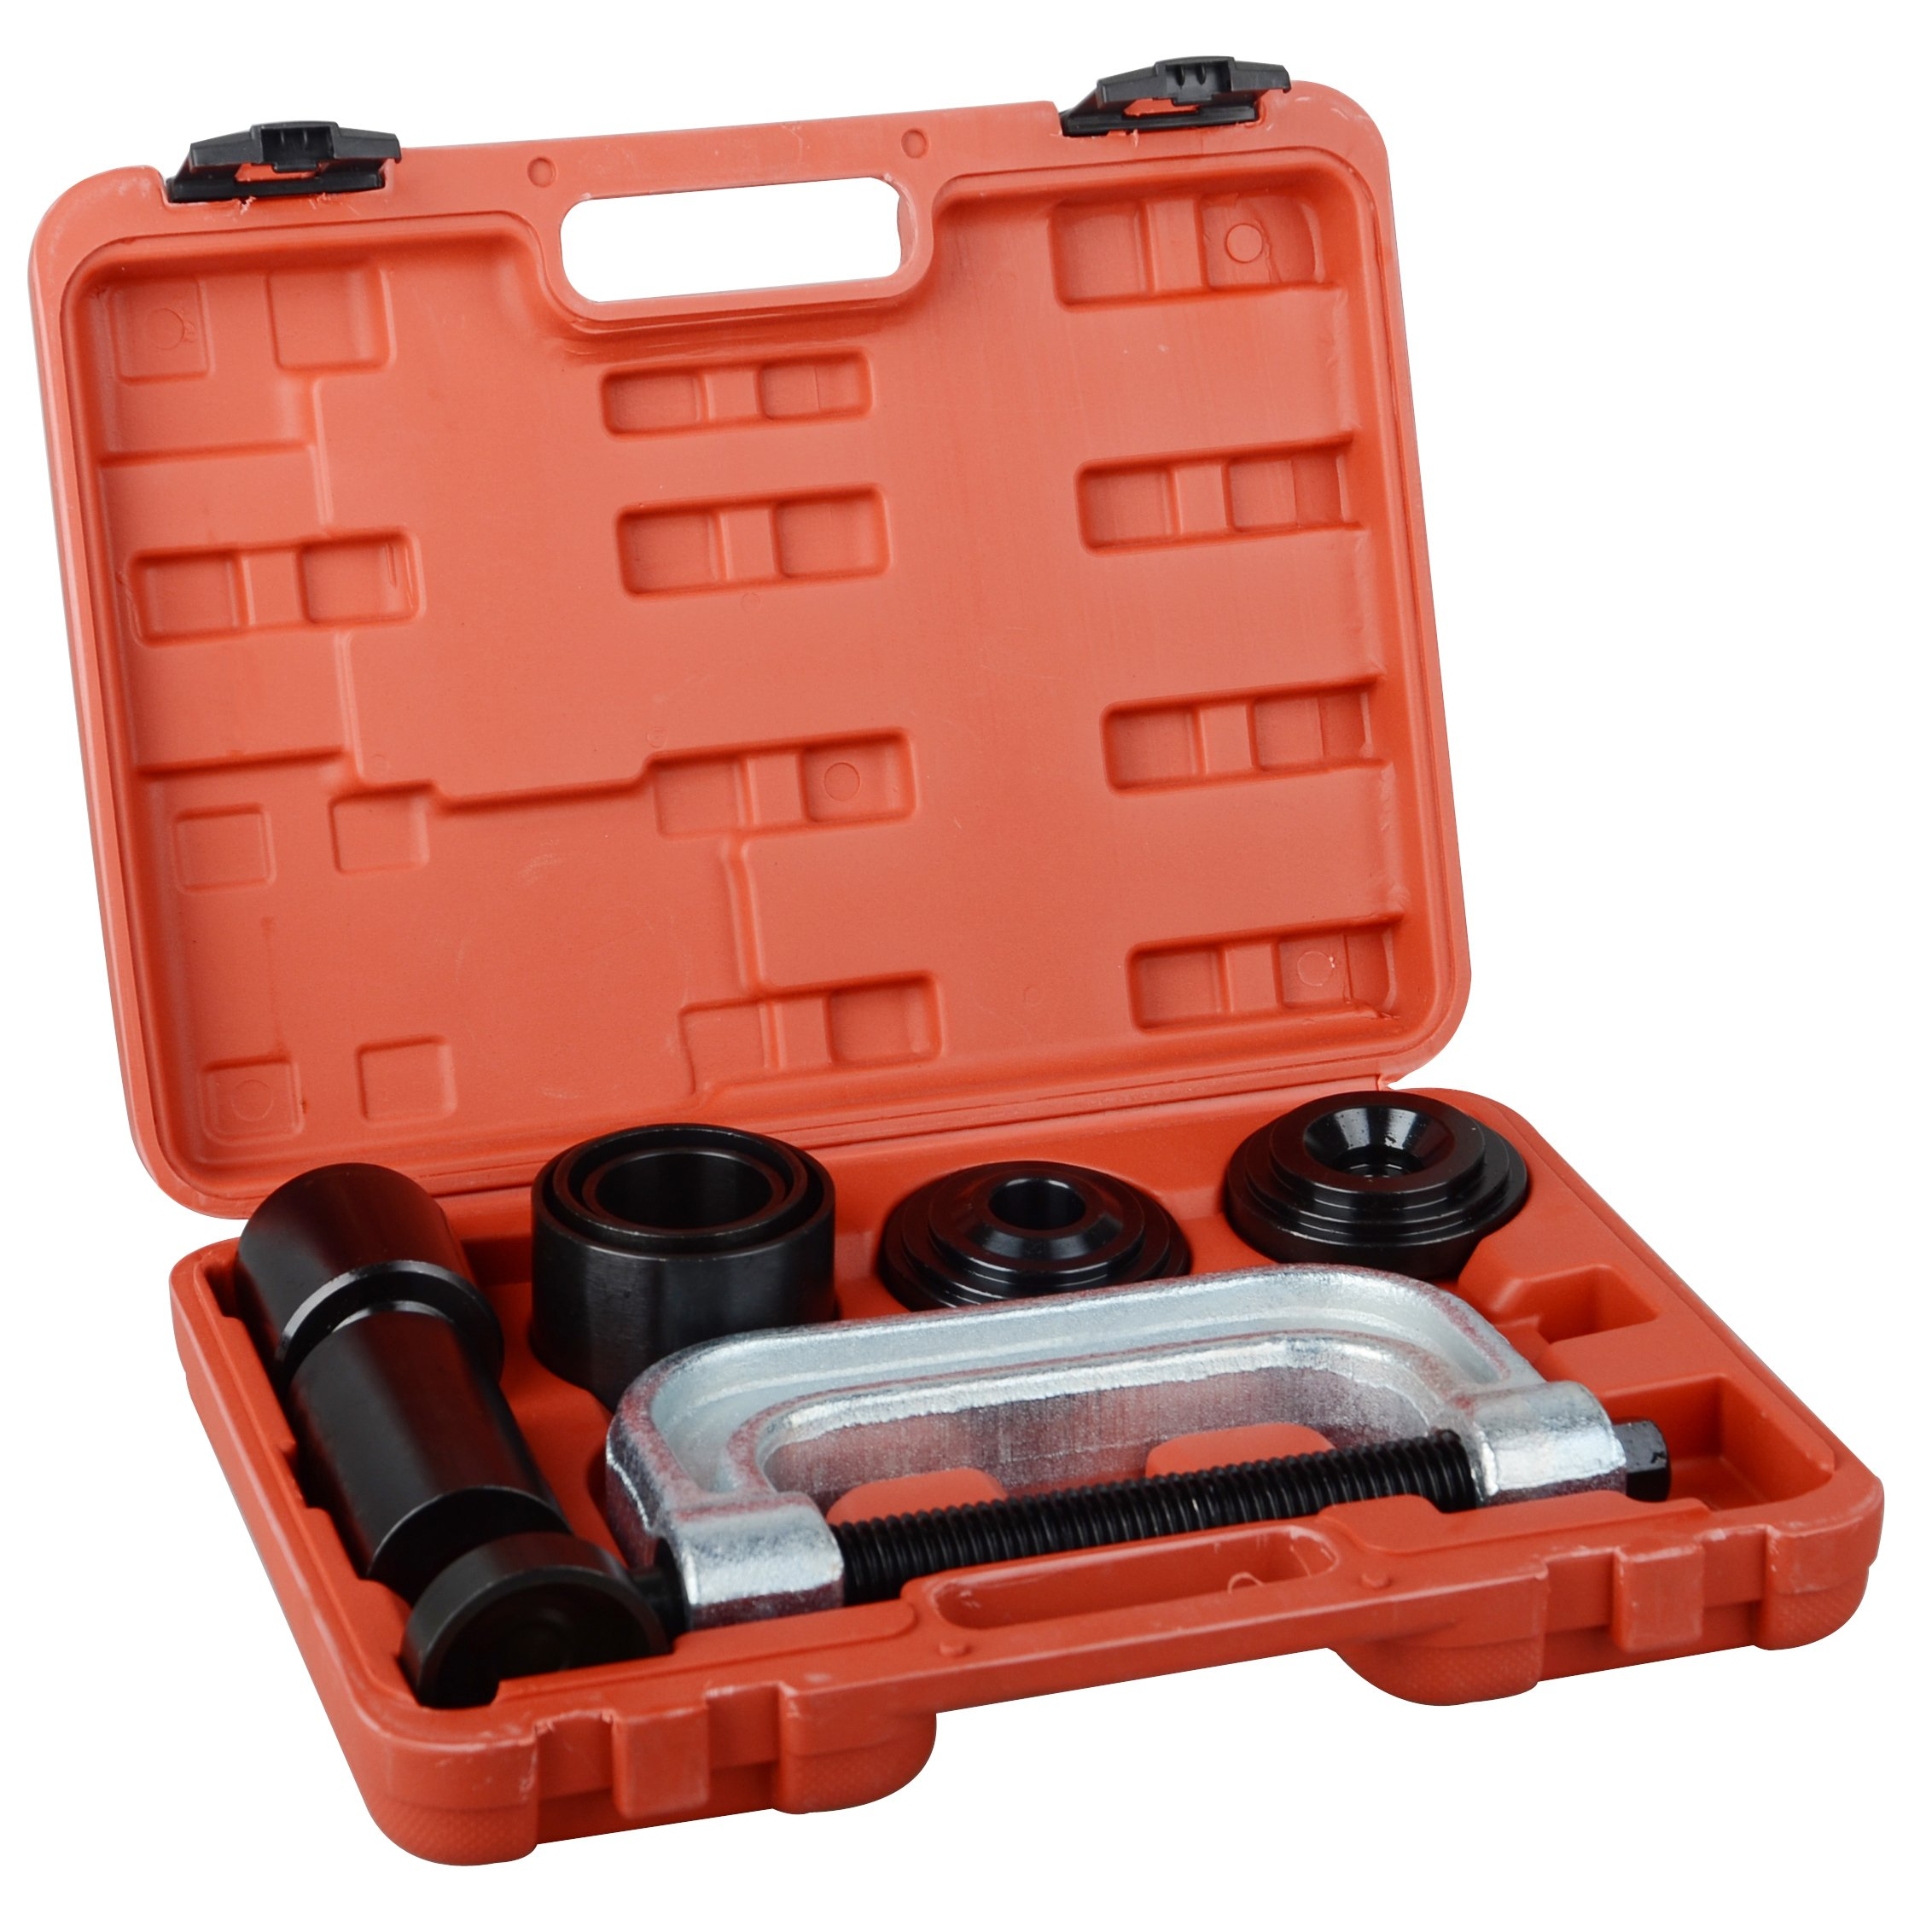 DA YUAN 4 in 1 Ball Joint Service Tool Kit 2WD & 4WD Remover Installer W/4-wheel Drive Adapters by DA YUAN